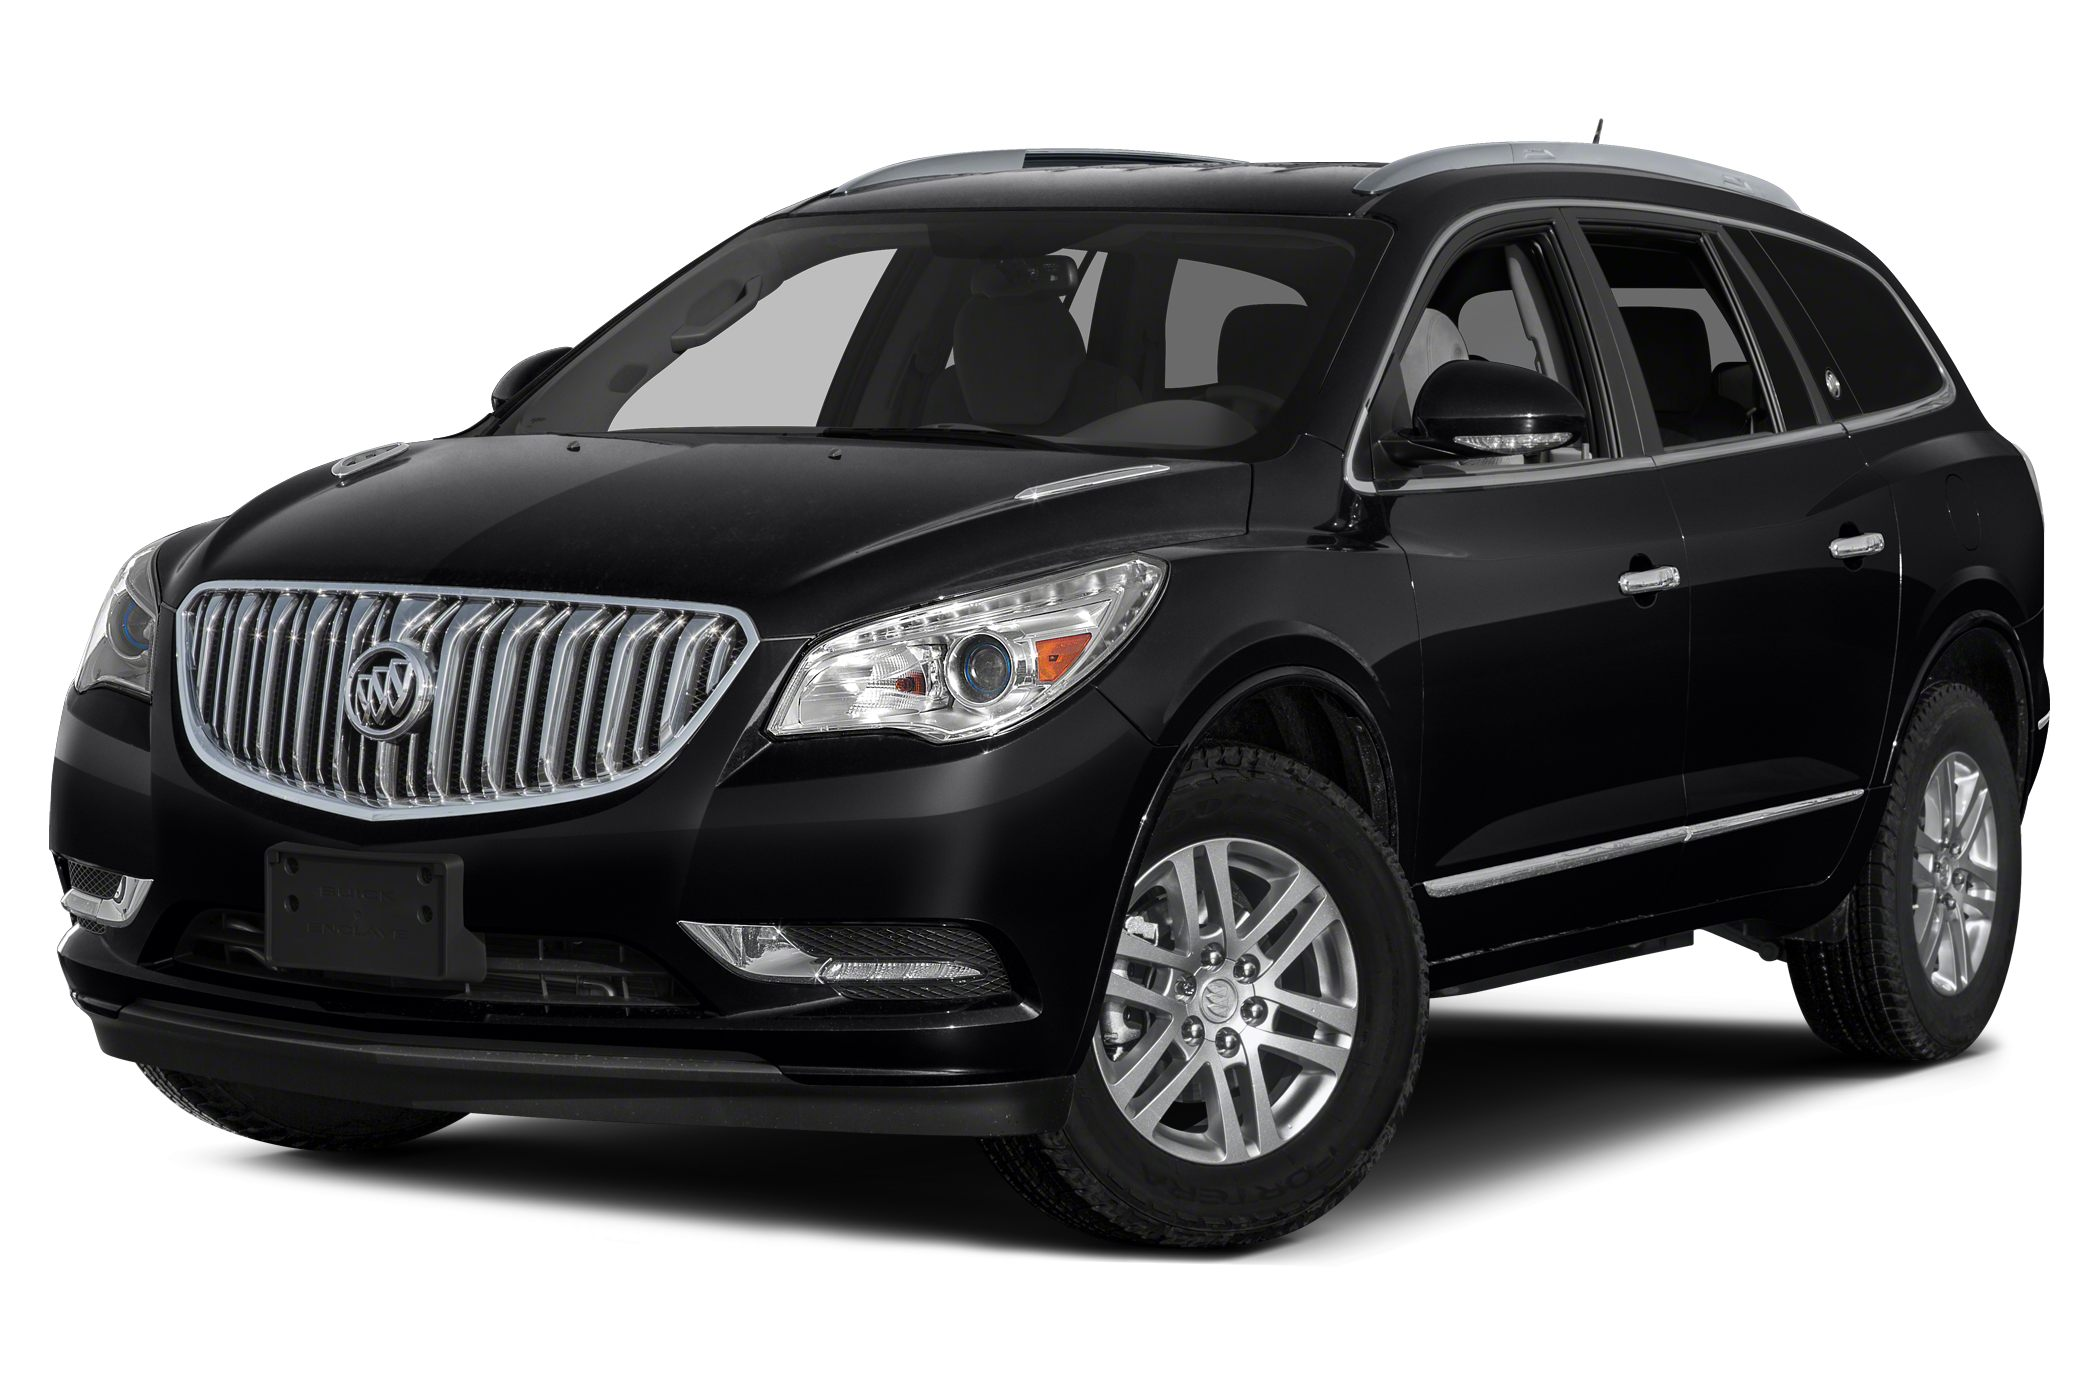 2013 Buick Enclave Leather Look forward to long road trips with anti-lock brakes blind spot senso